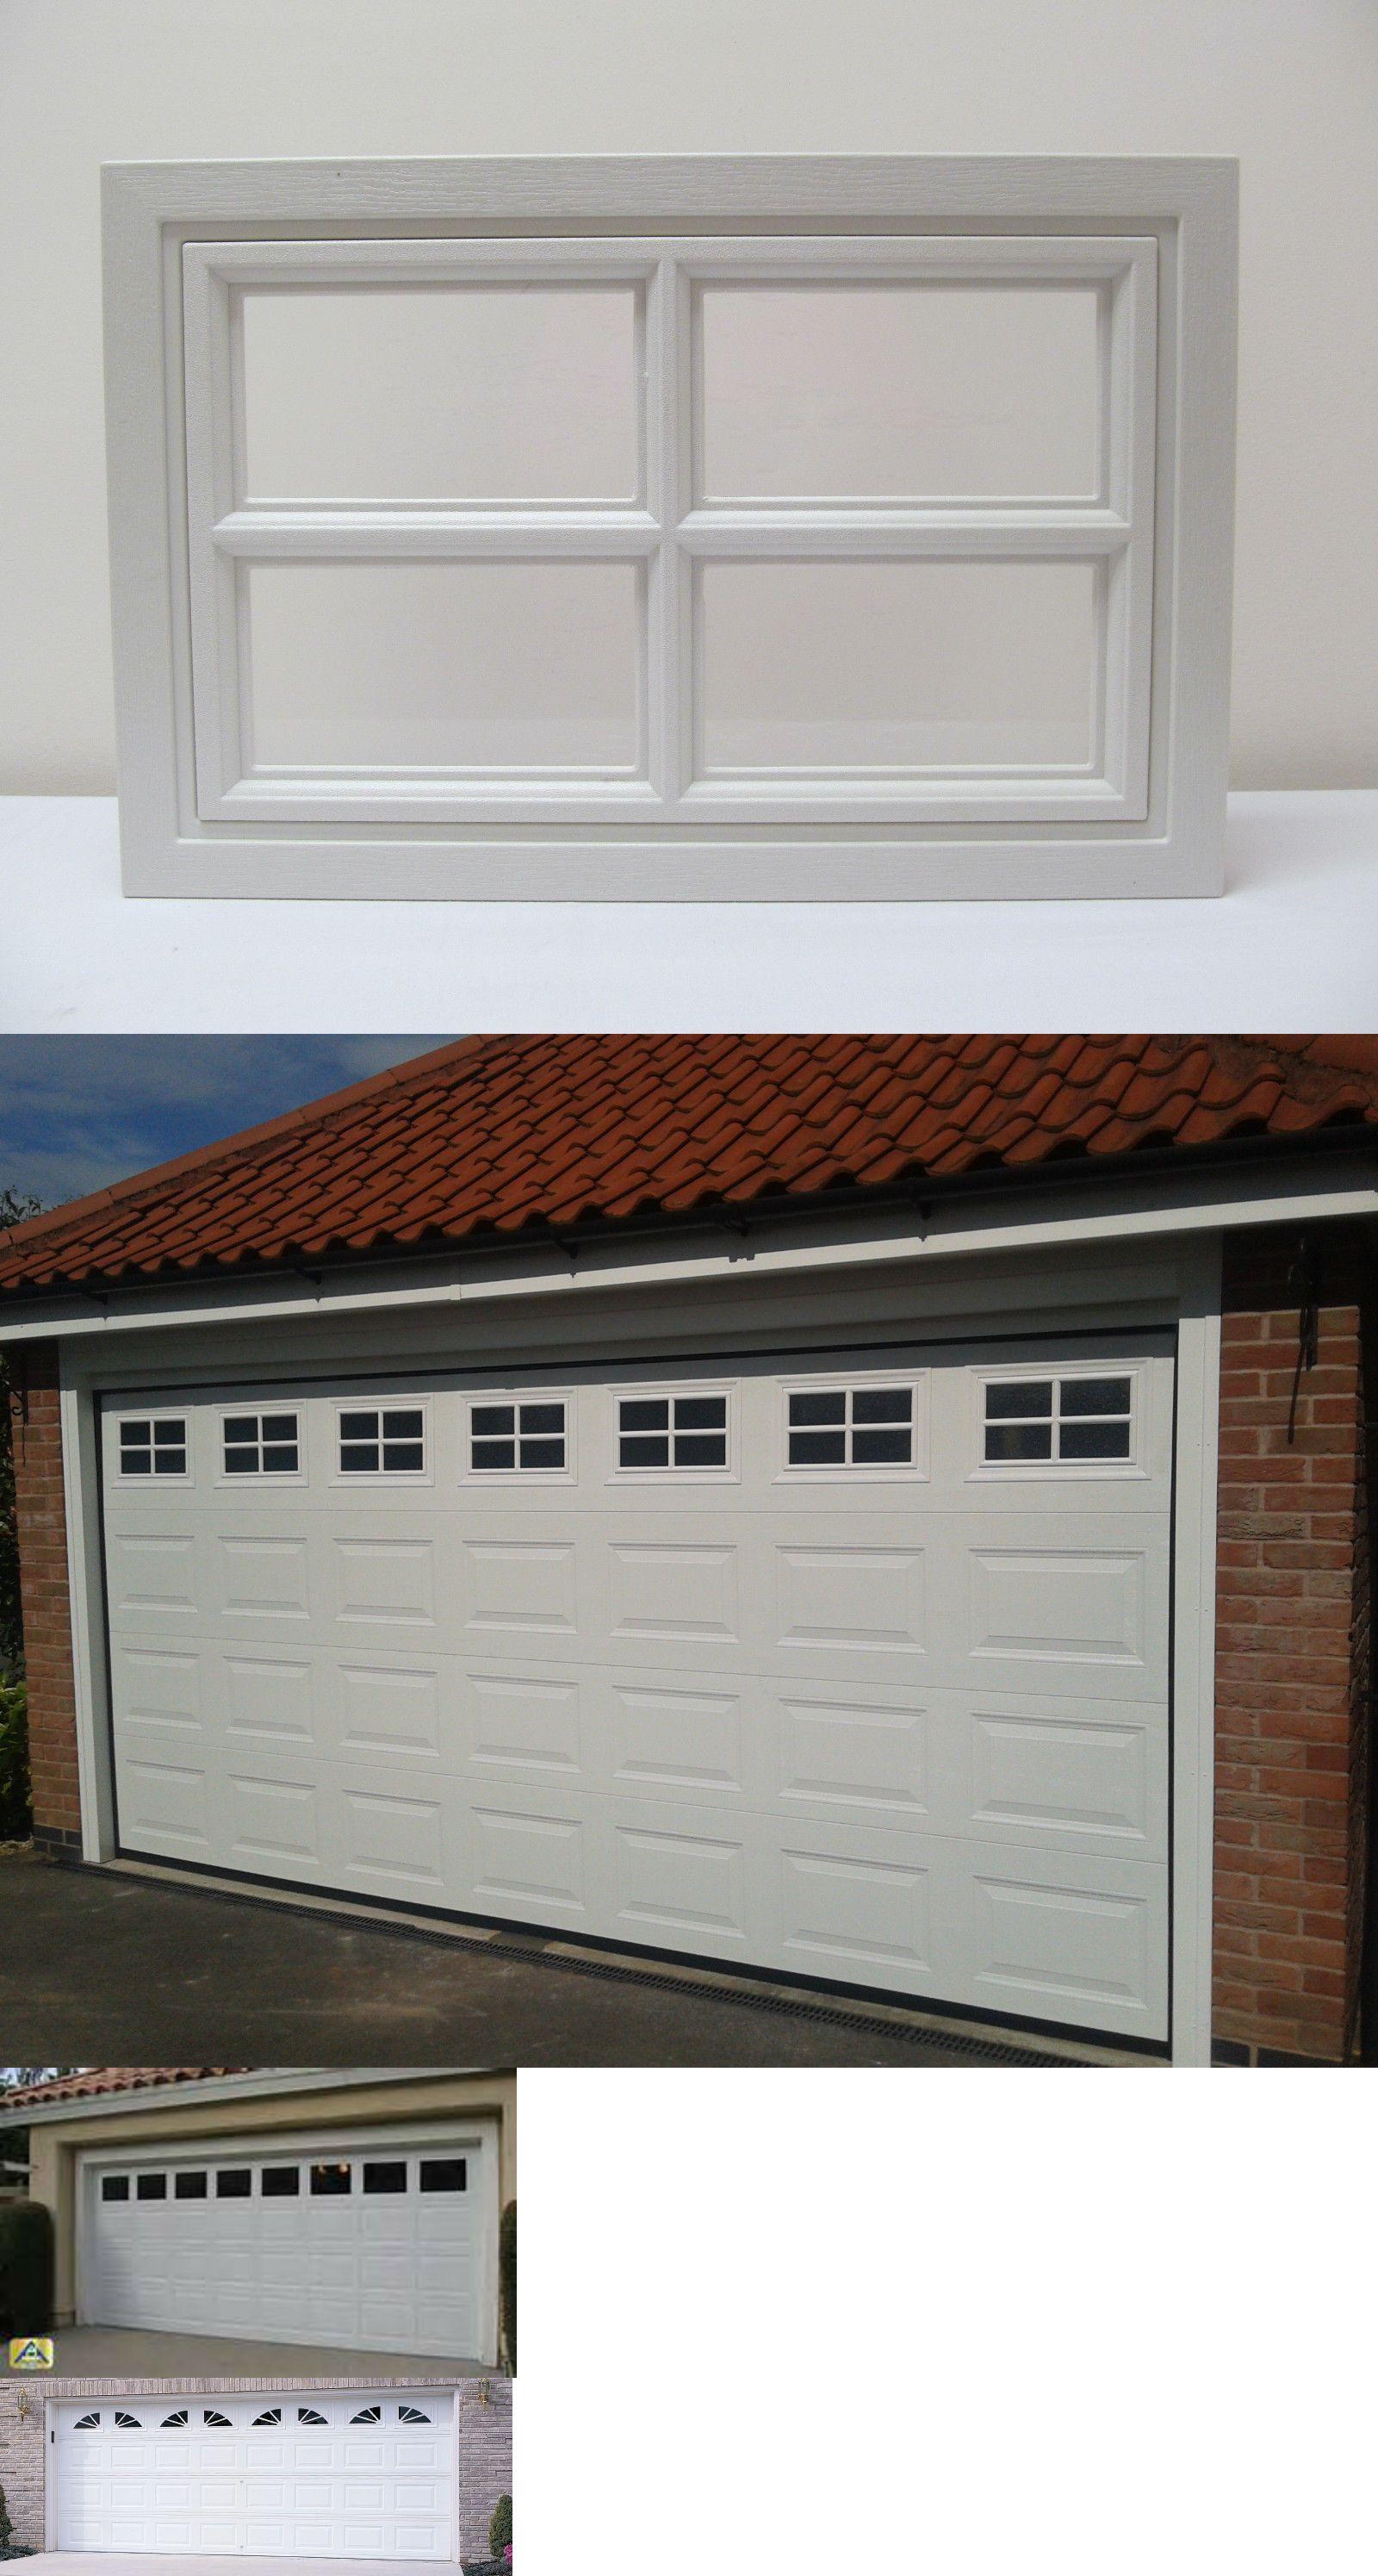 Carriage garage doors without windows  Garage Door Parts and Accs  Garage Door Windows Real Windows